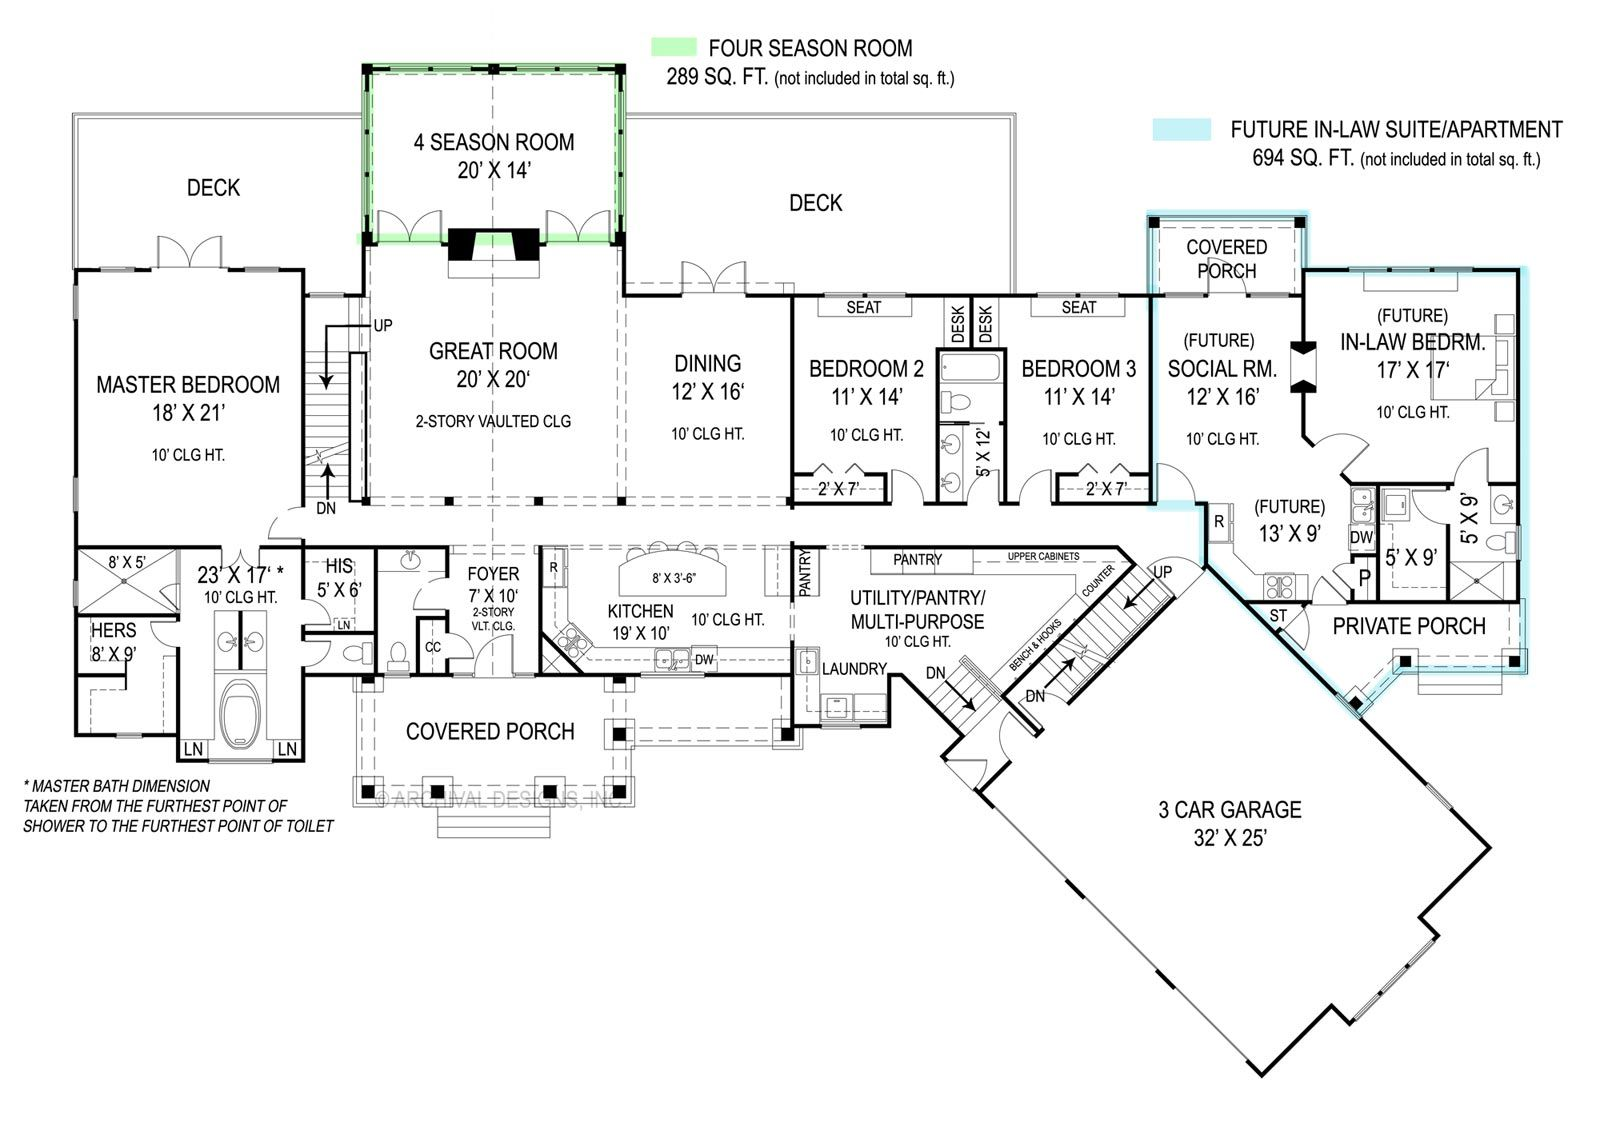 house plan 9020 features a full in law apartment with private